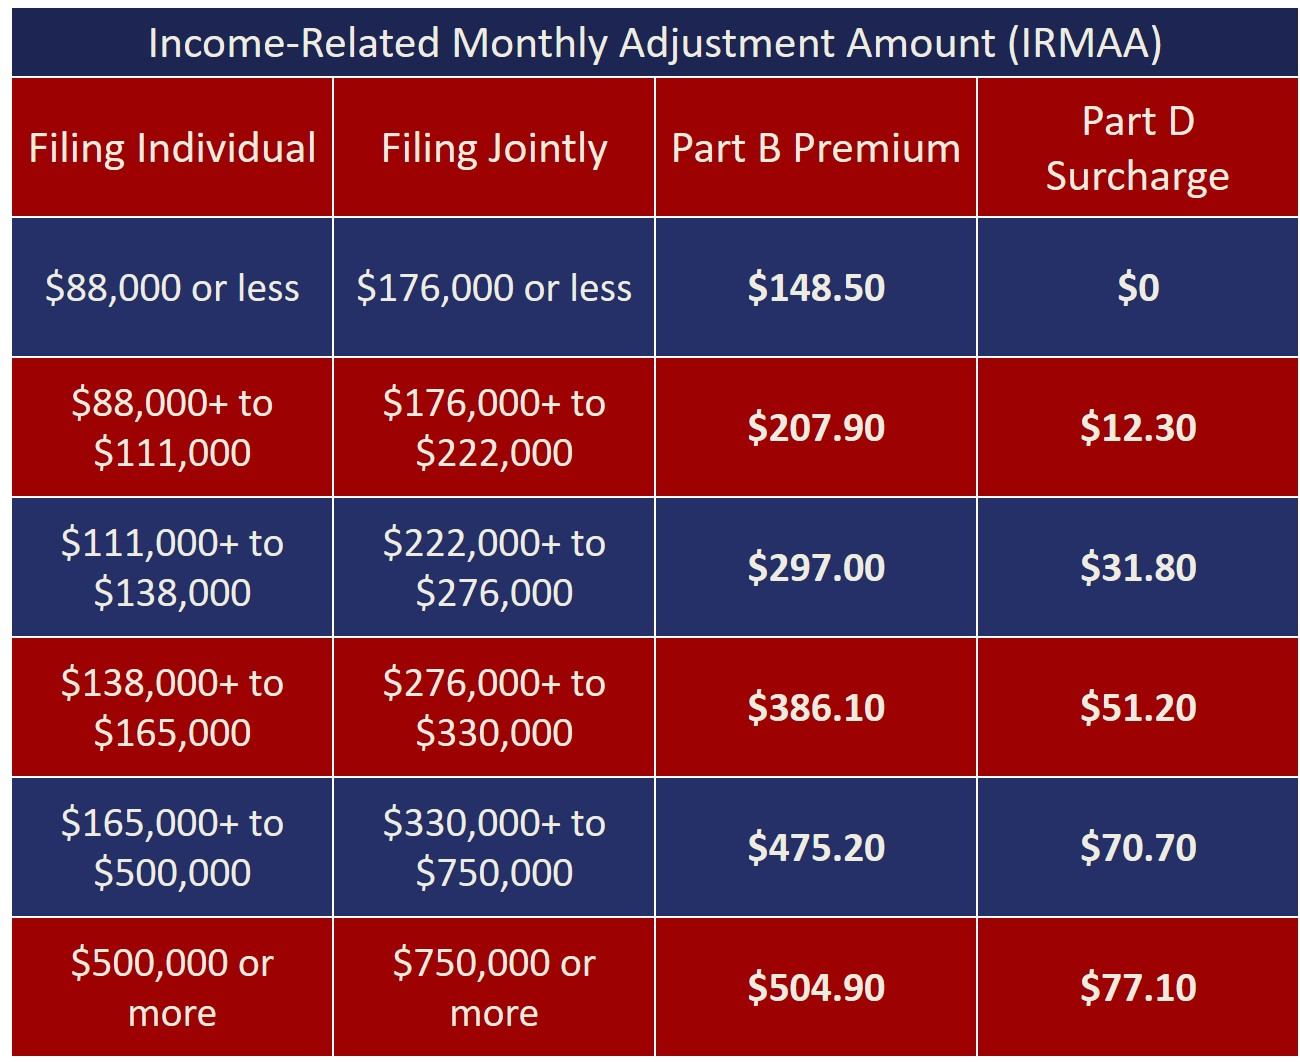 2021 Income-Related Monthly Adjustment Amount IRMAA